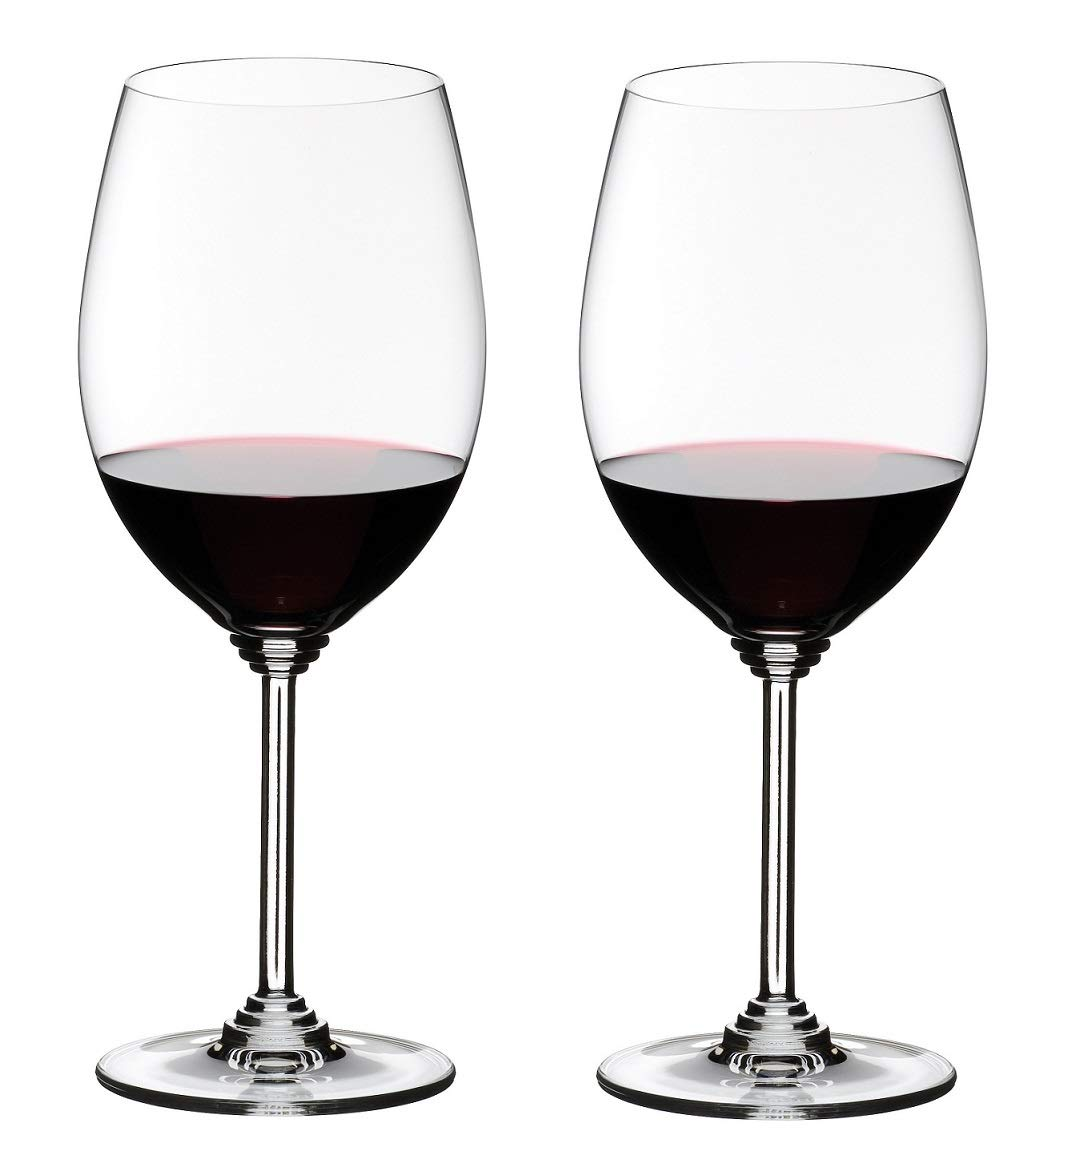 Riedel Wine Series Cabernet/Merlot Glass, Set of 2